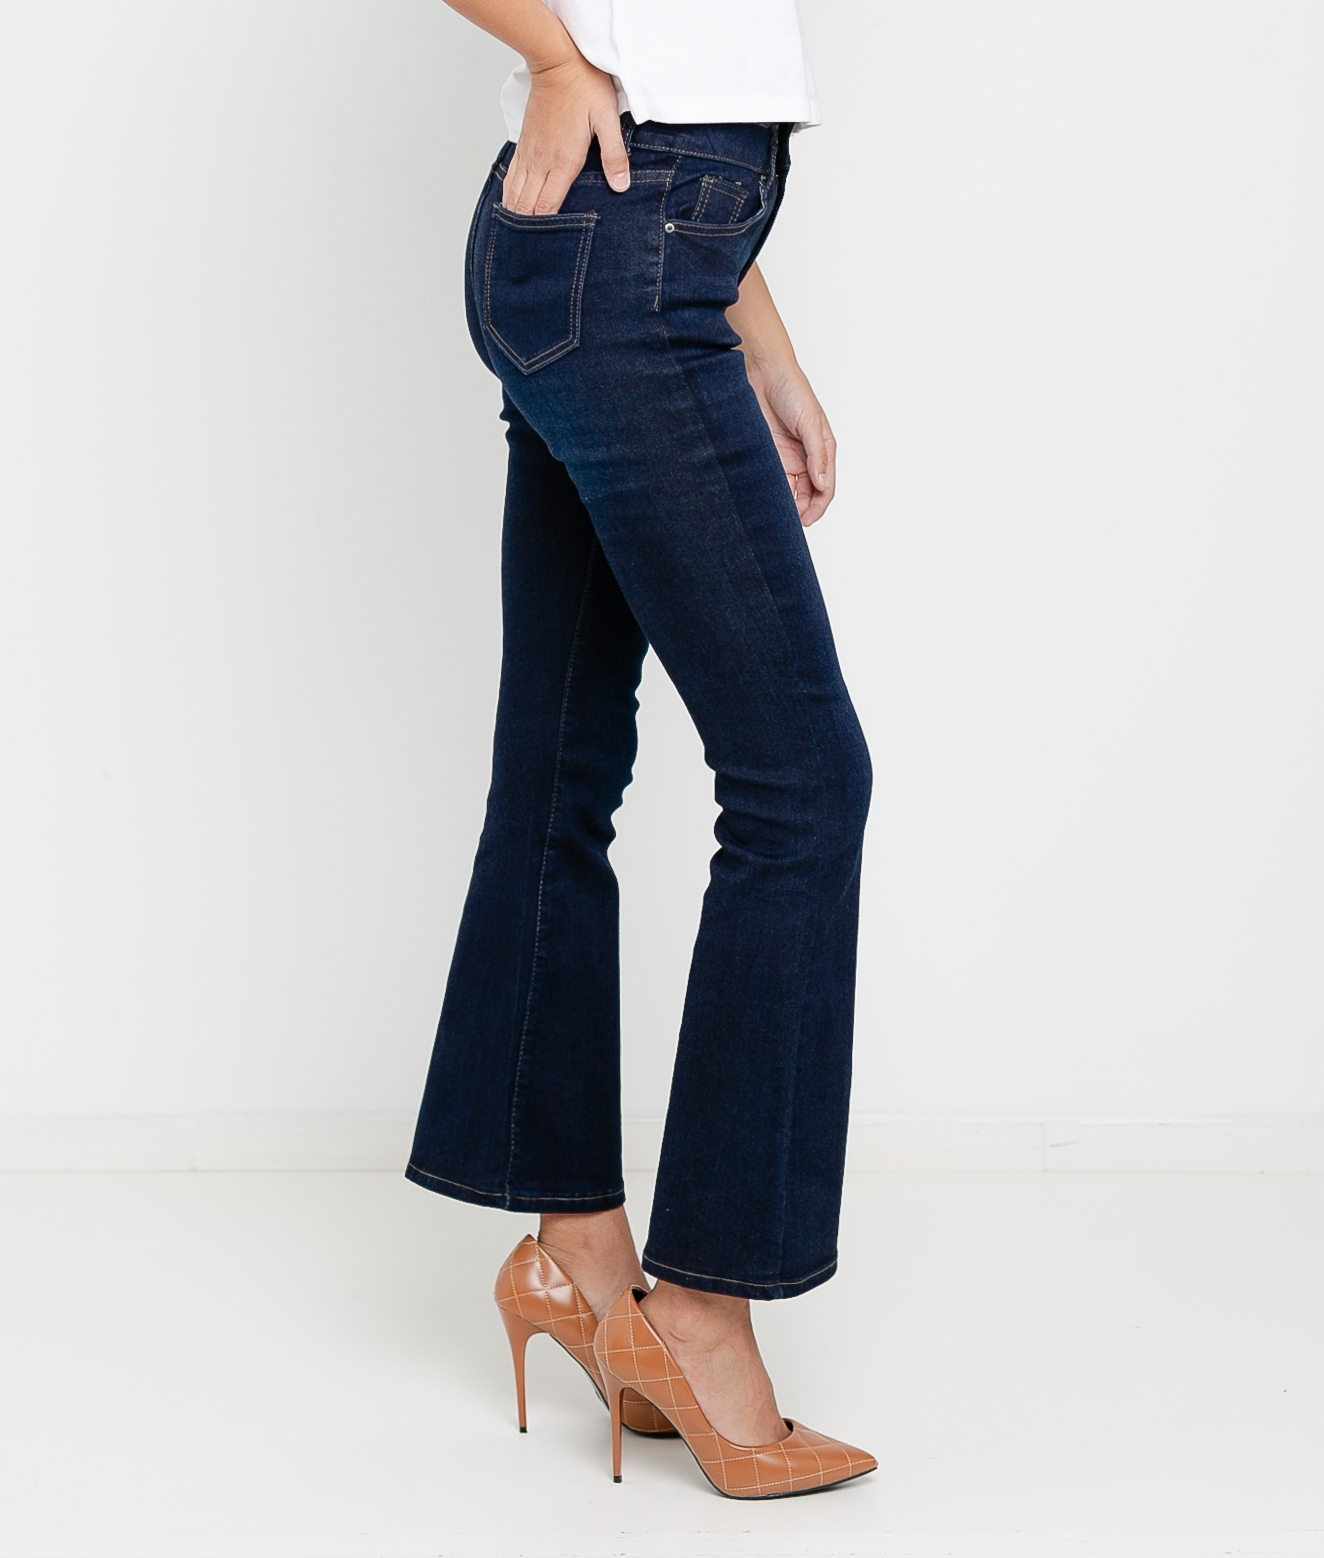 REMION TROUSERS - DARK DENIM